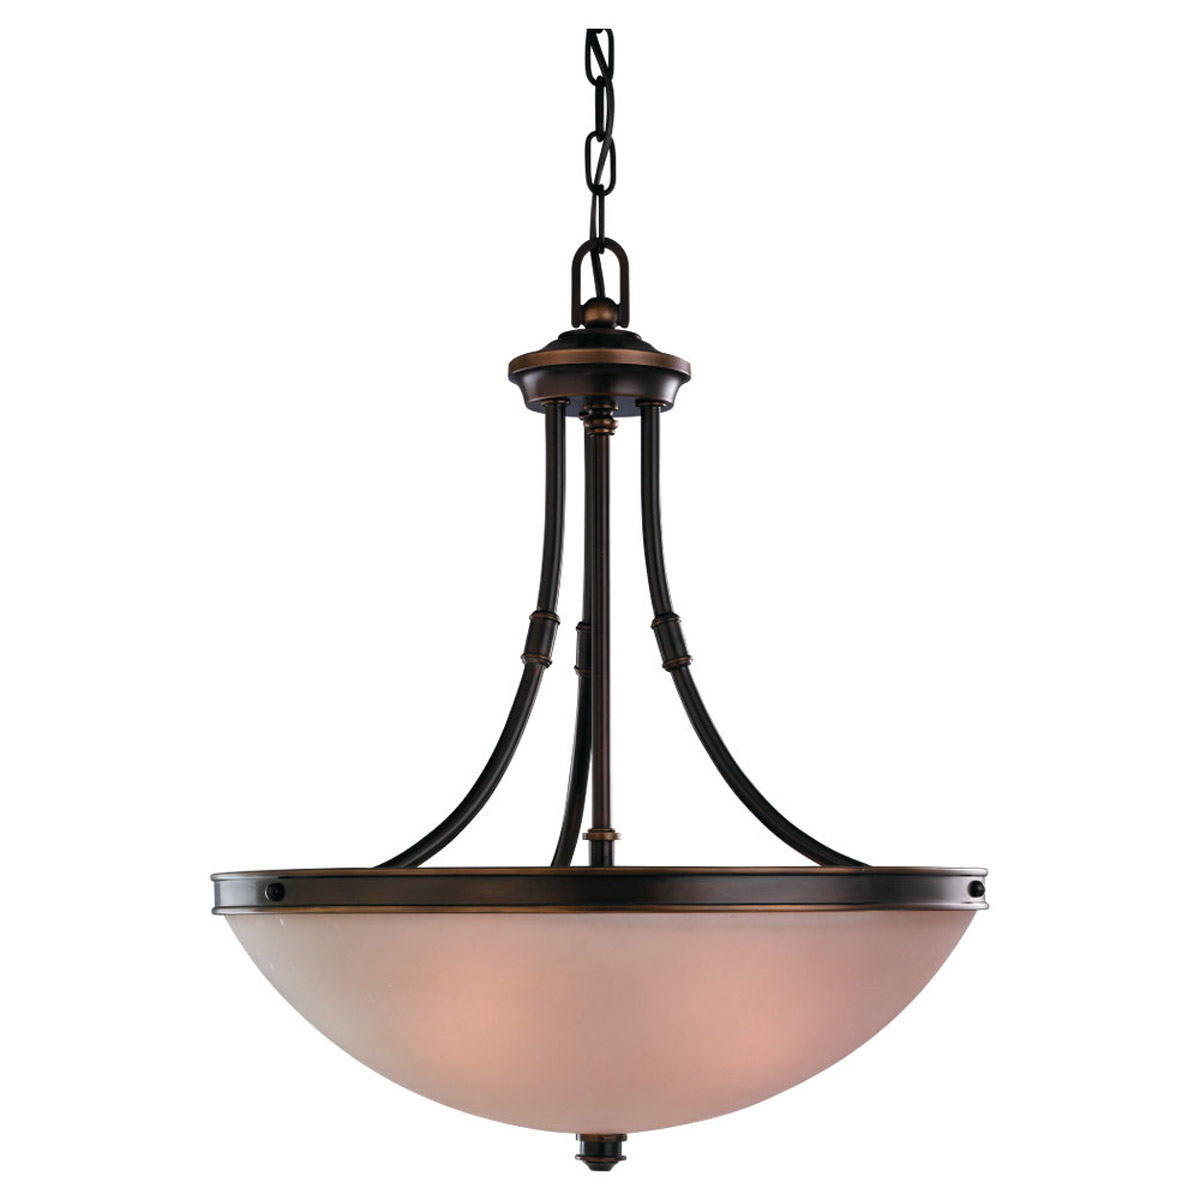 Sea Gull Lighting Warwick 3 Light Pendant in Vintage Bronze 65331-825 photo